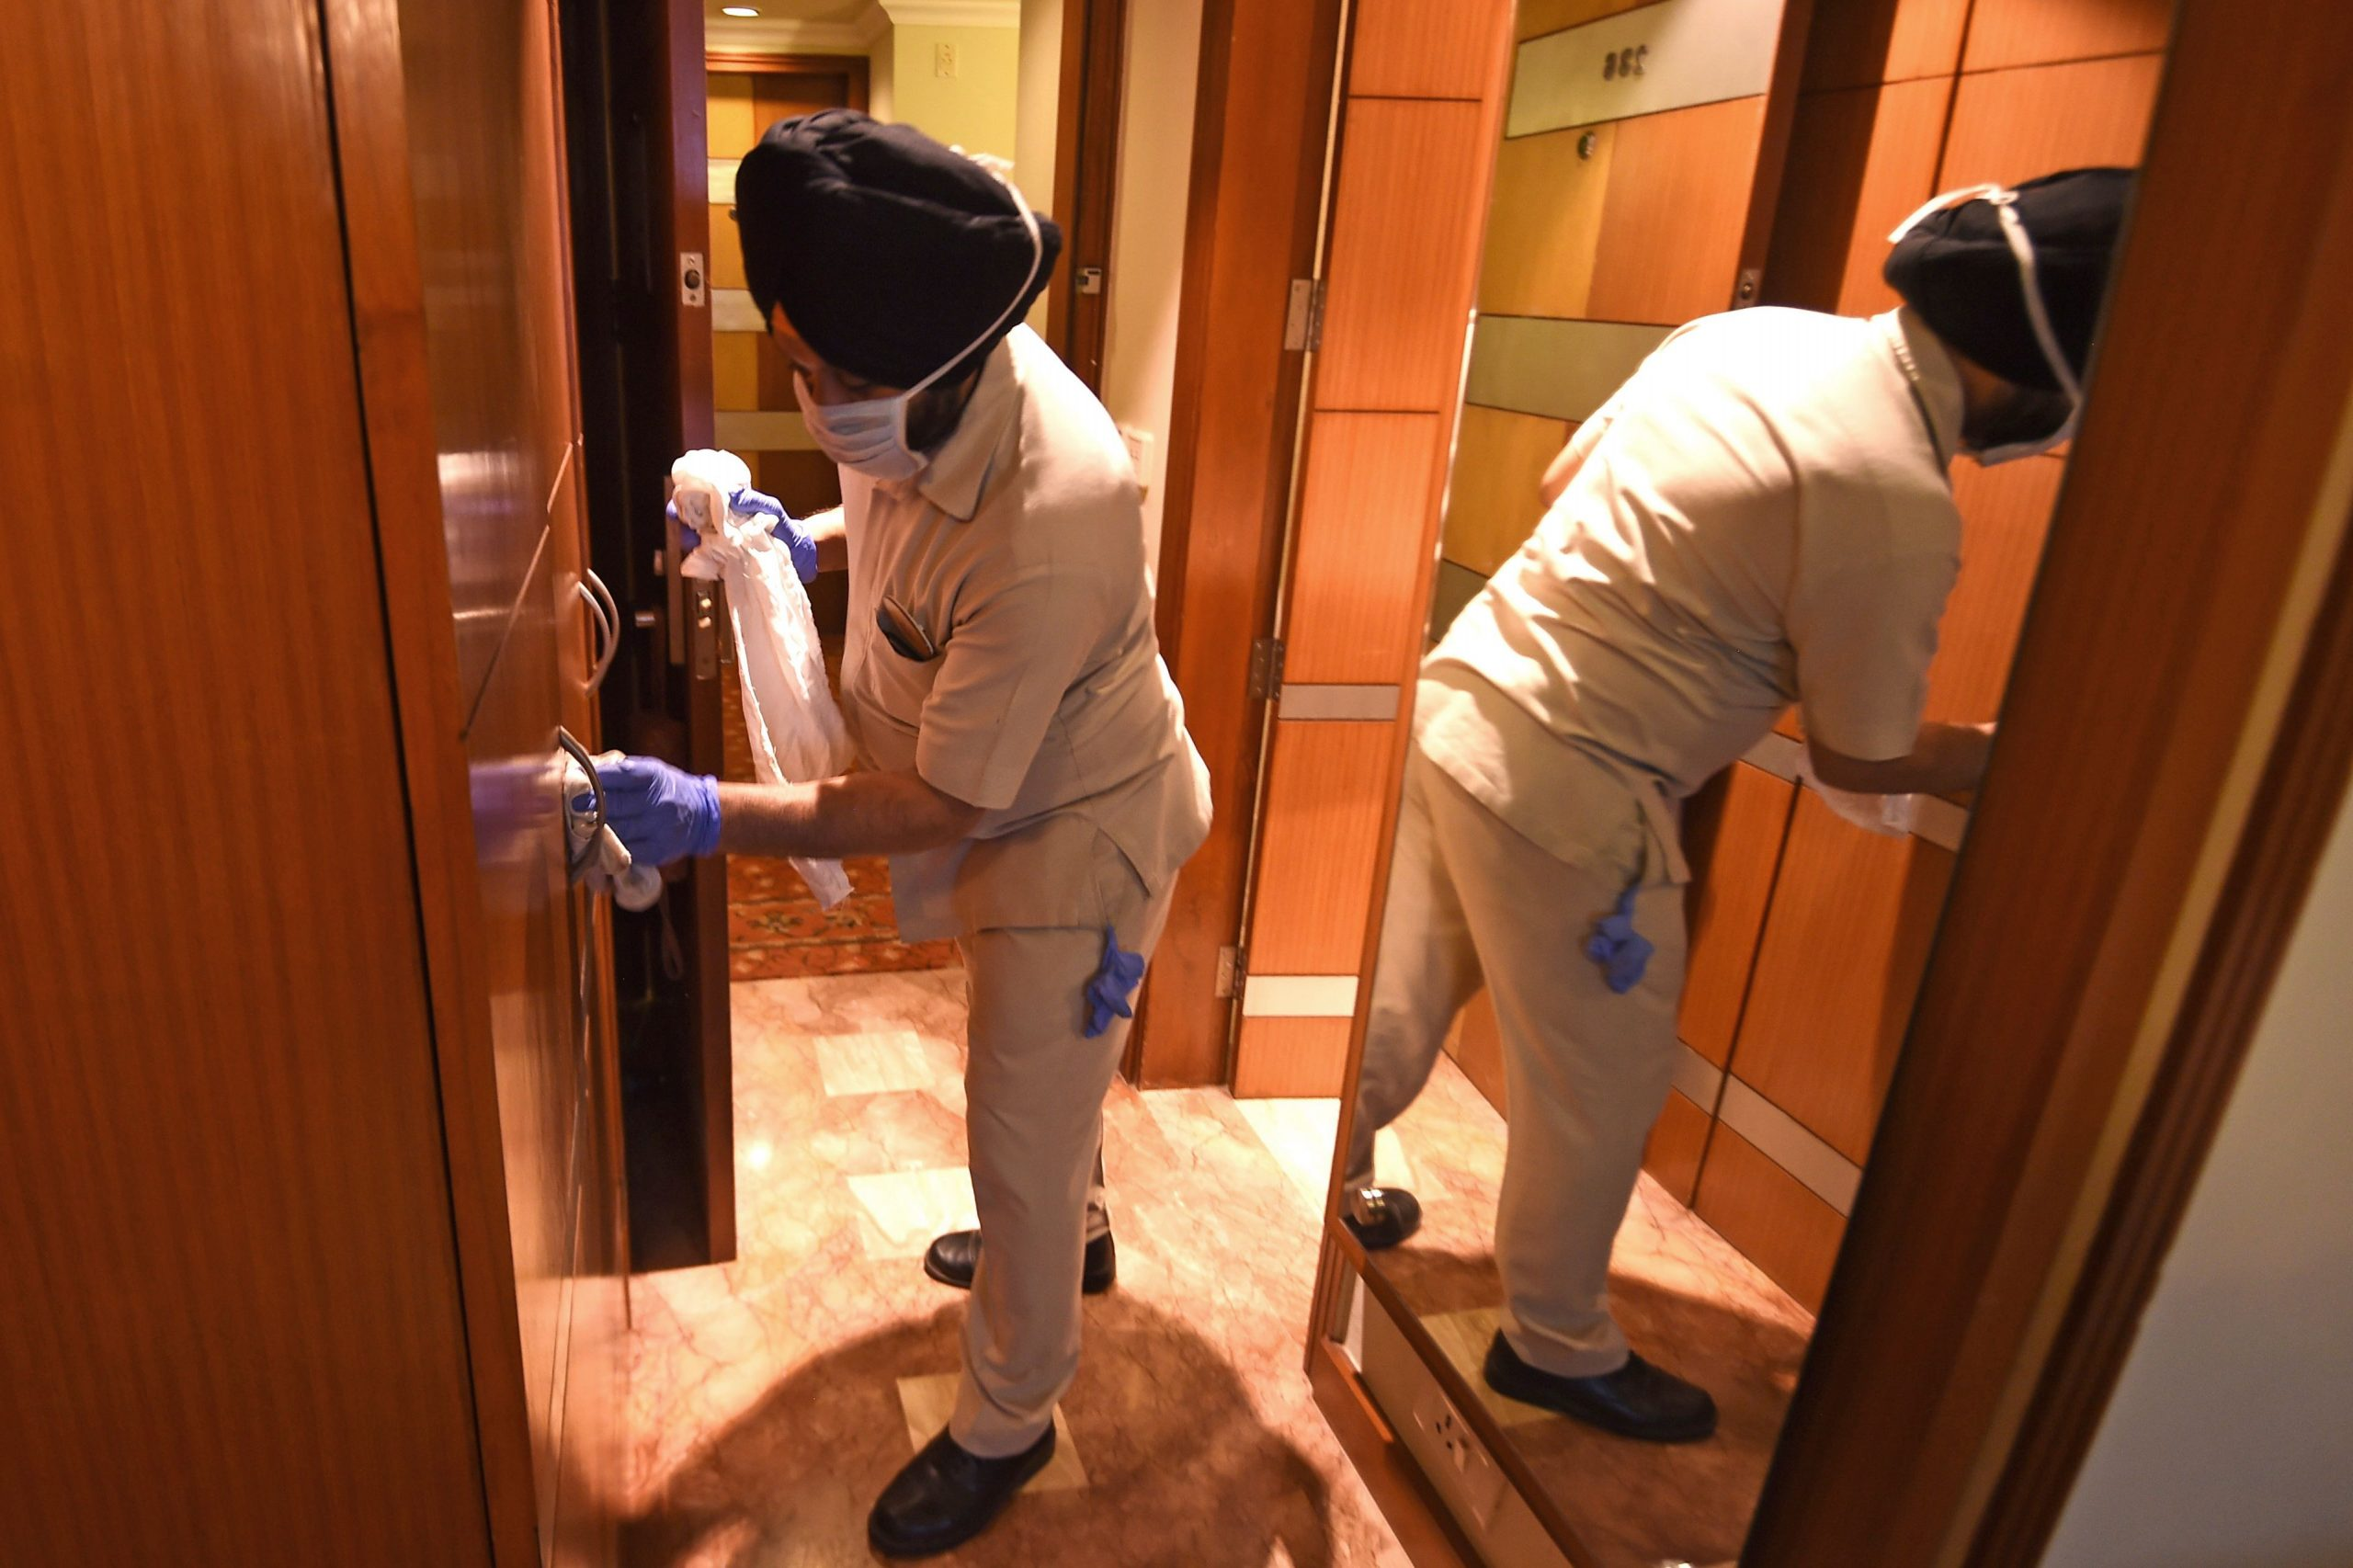 A housekeeping employee of the Suryaa hotel cleans a room in New Delhi. - Staff at the luxury Suryaa hotel used to welcome guests in bright saris. Now they must don medical suits and handle gurneys as New Delhi desperately prepares for a predicted surge in coronavirus cases in the coming weeks. (Photo by Money SHARMA / AFP) /